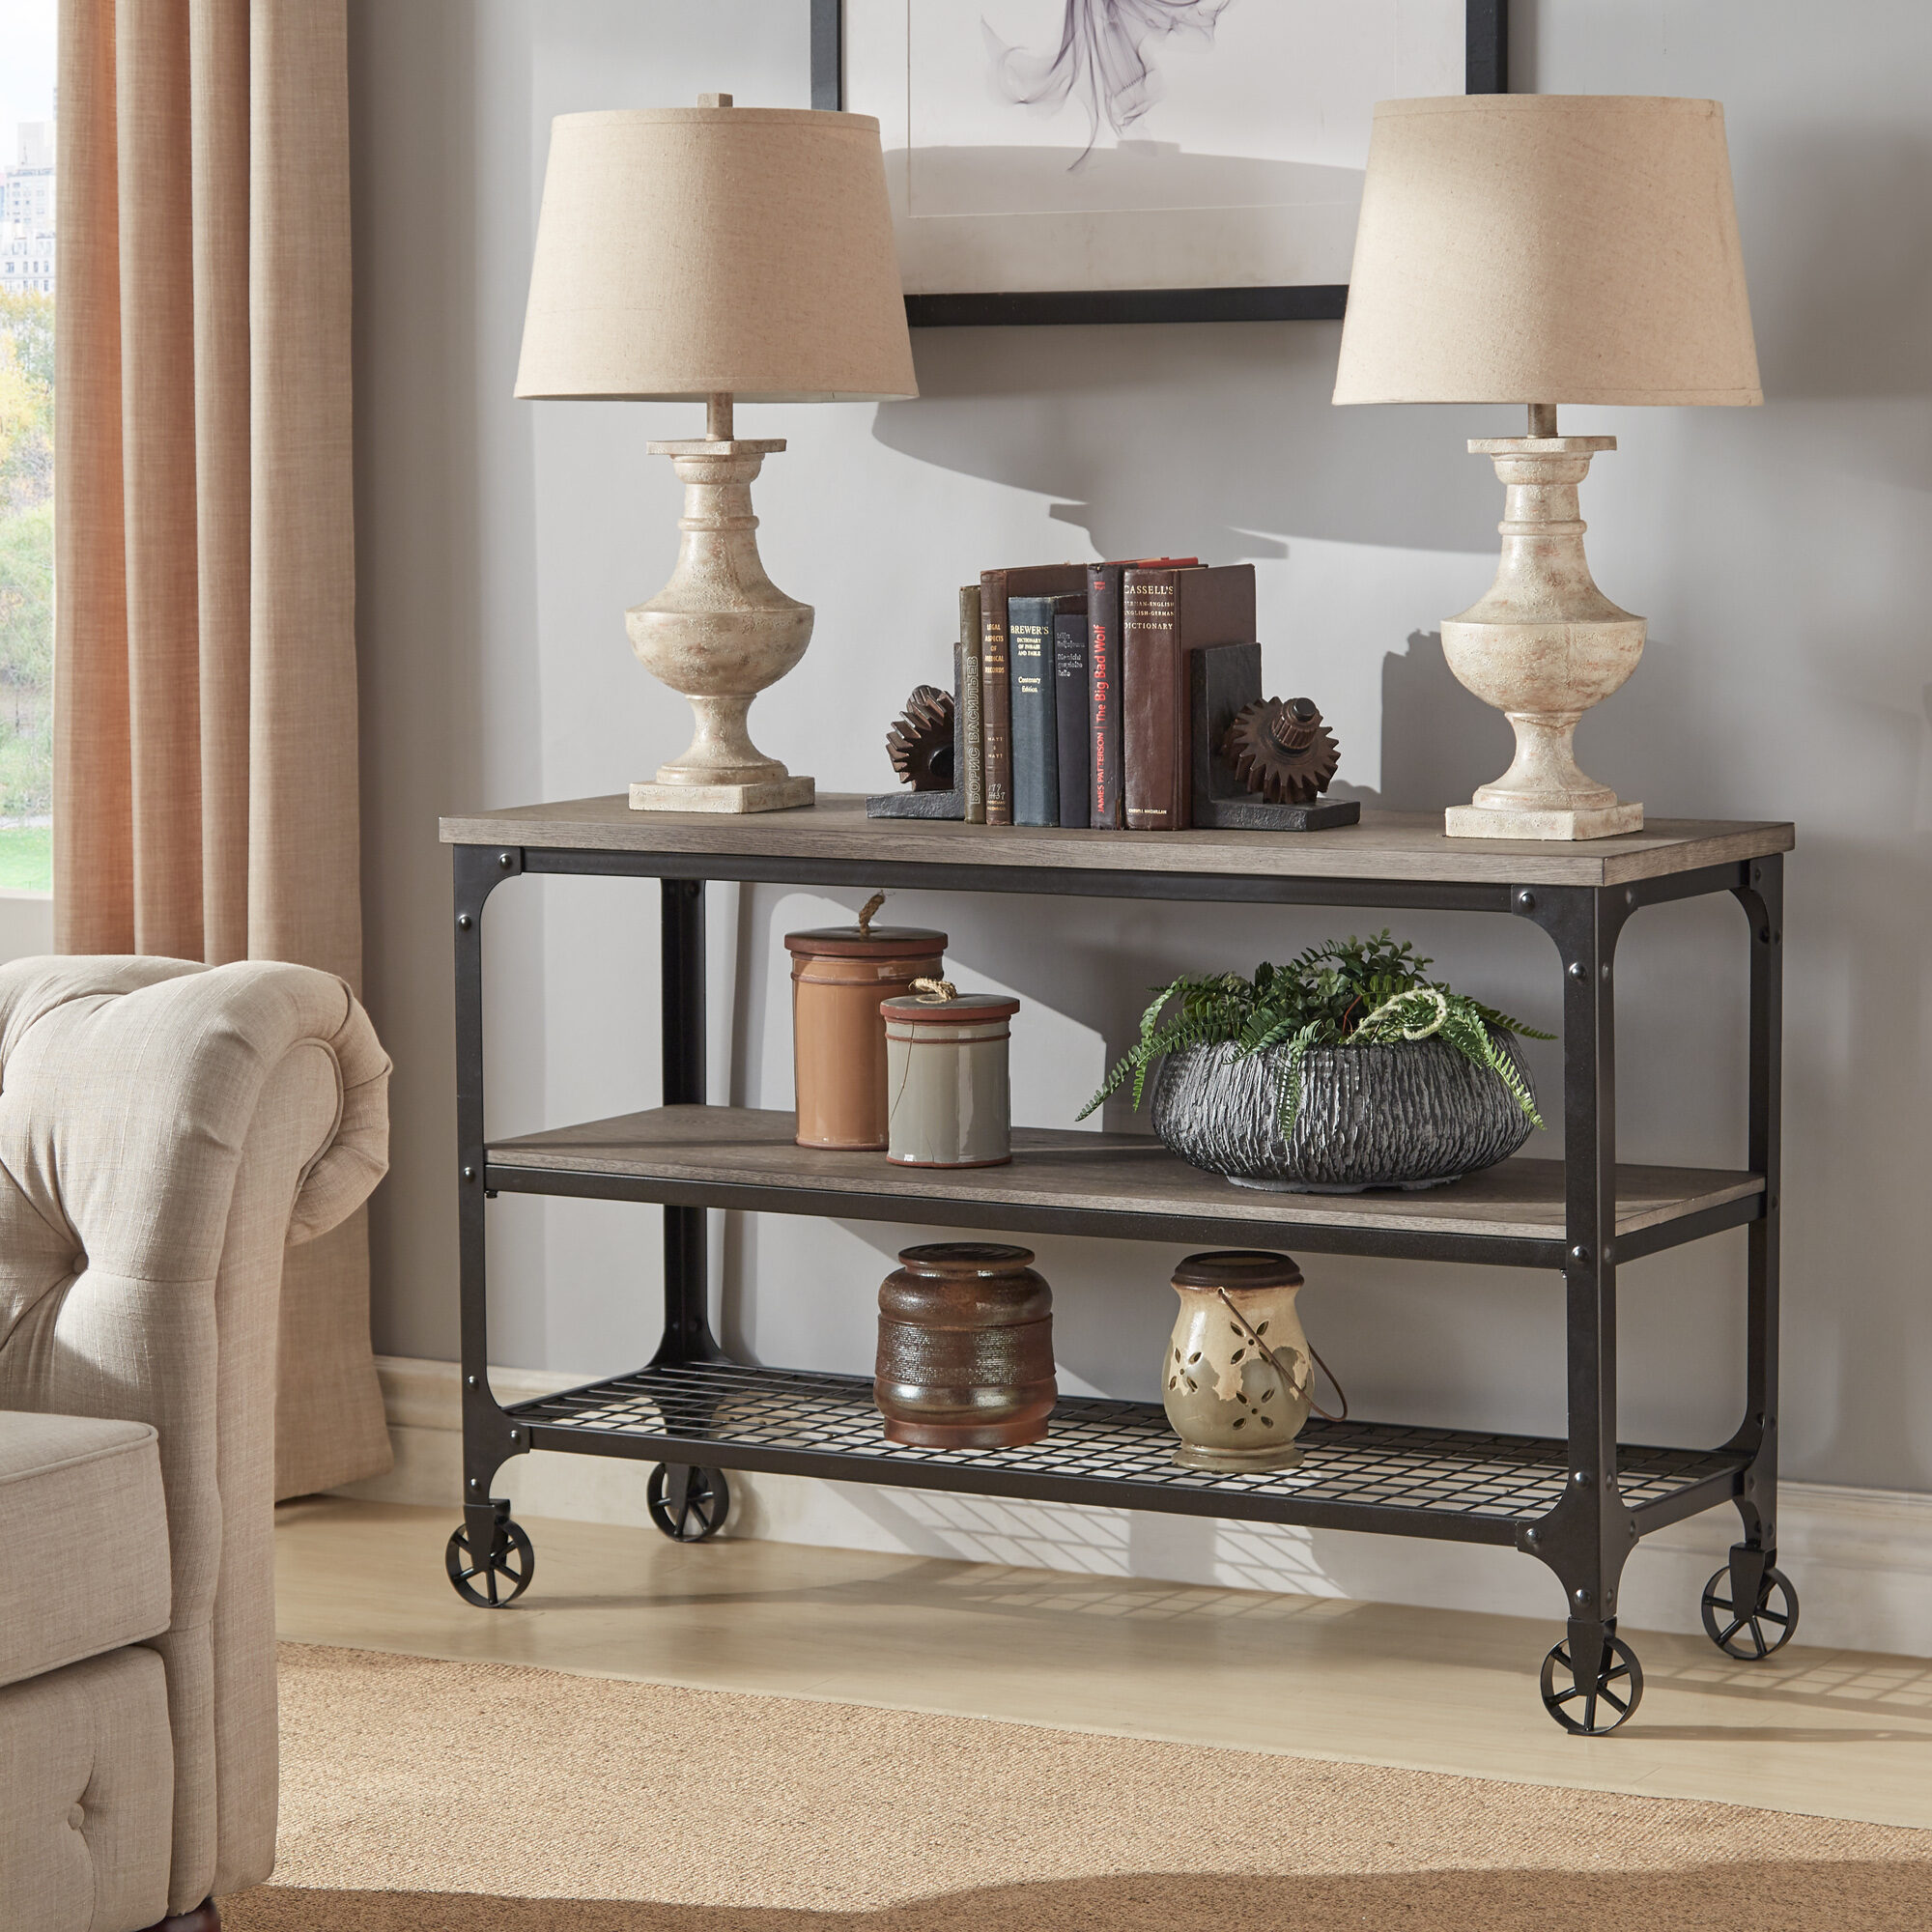 If you have the space, or hall trees are not your cup of tea, then try using a console table in your entryway! This is our Nelson Industrial Modern Rustic Console Sofa Table TV Stand by iNSPIRE Q Classic. It has three shelves, two of which featuring a weathered wood finish while the bottom shelf matches the metal frame.